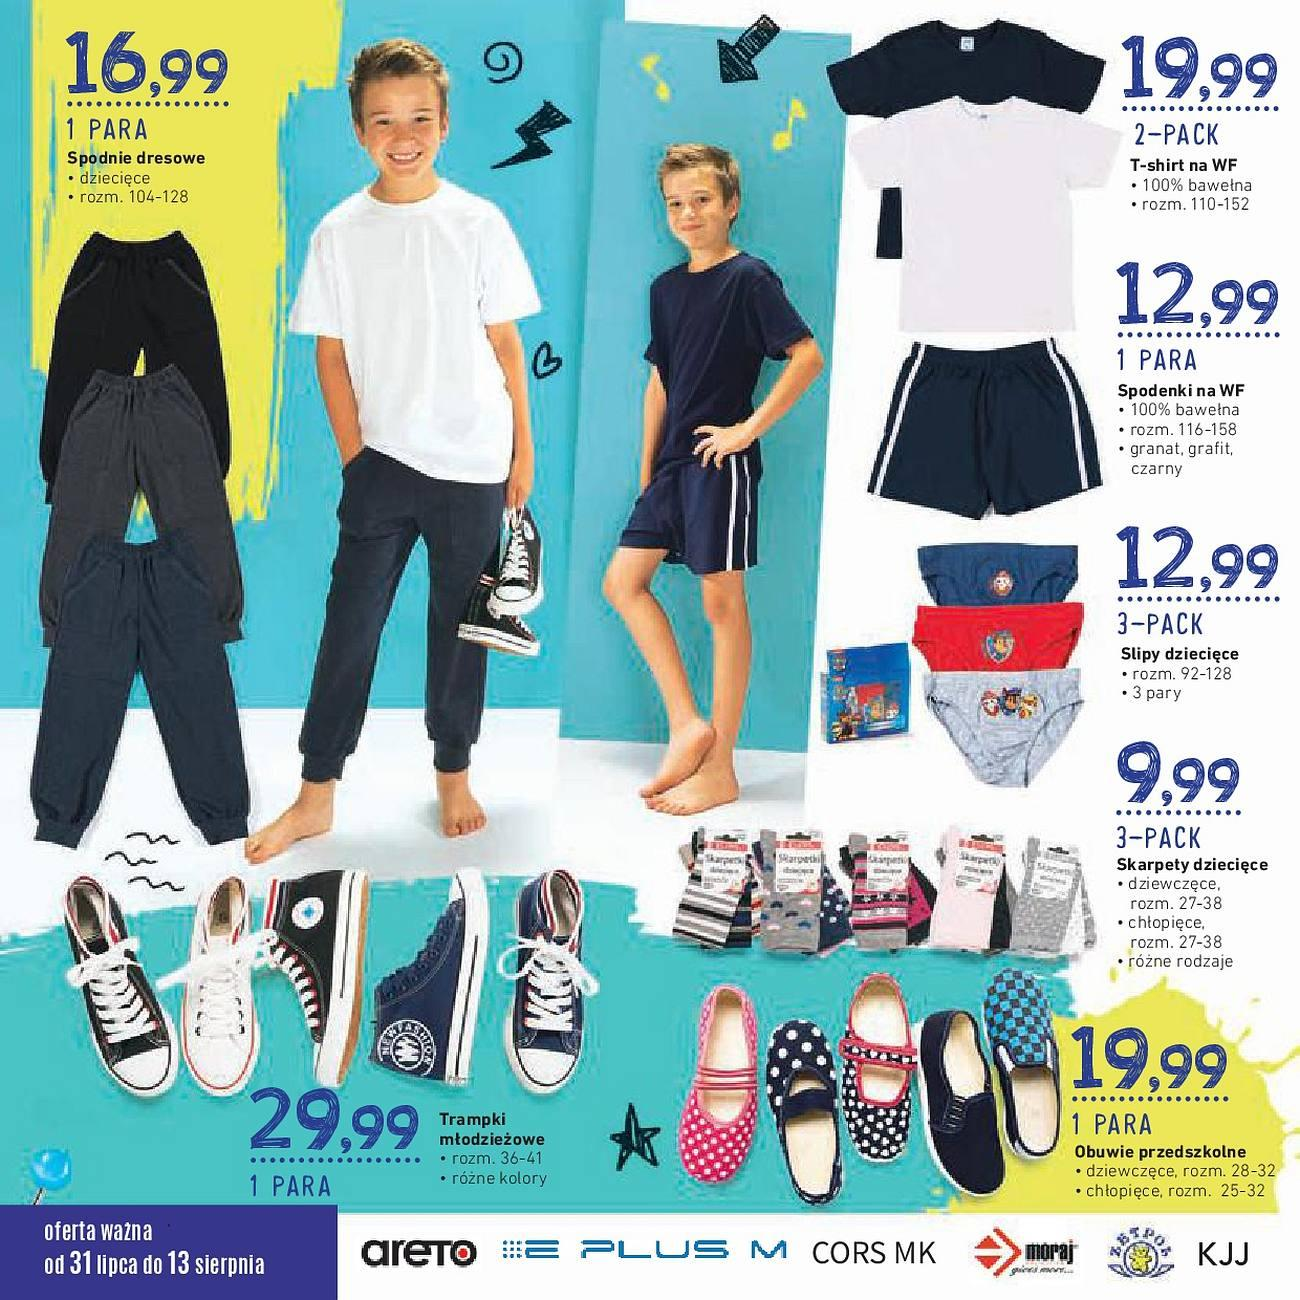 Gazetka promocyjna Intermarche do 13/08/2018 str.10